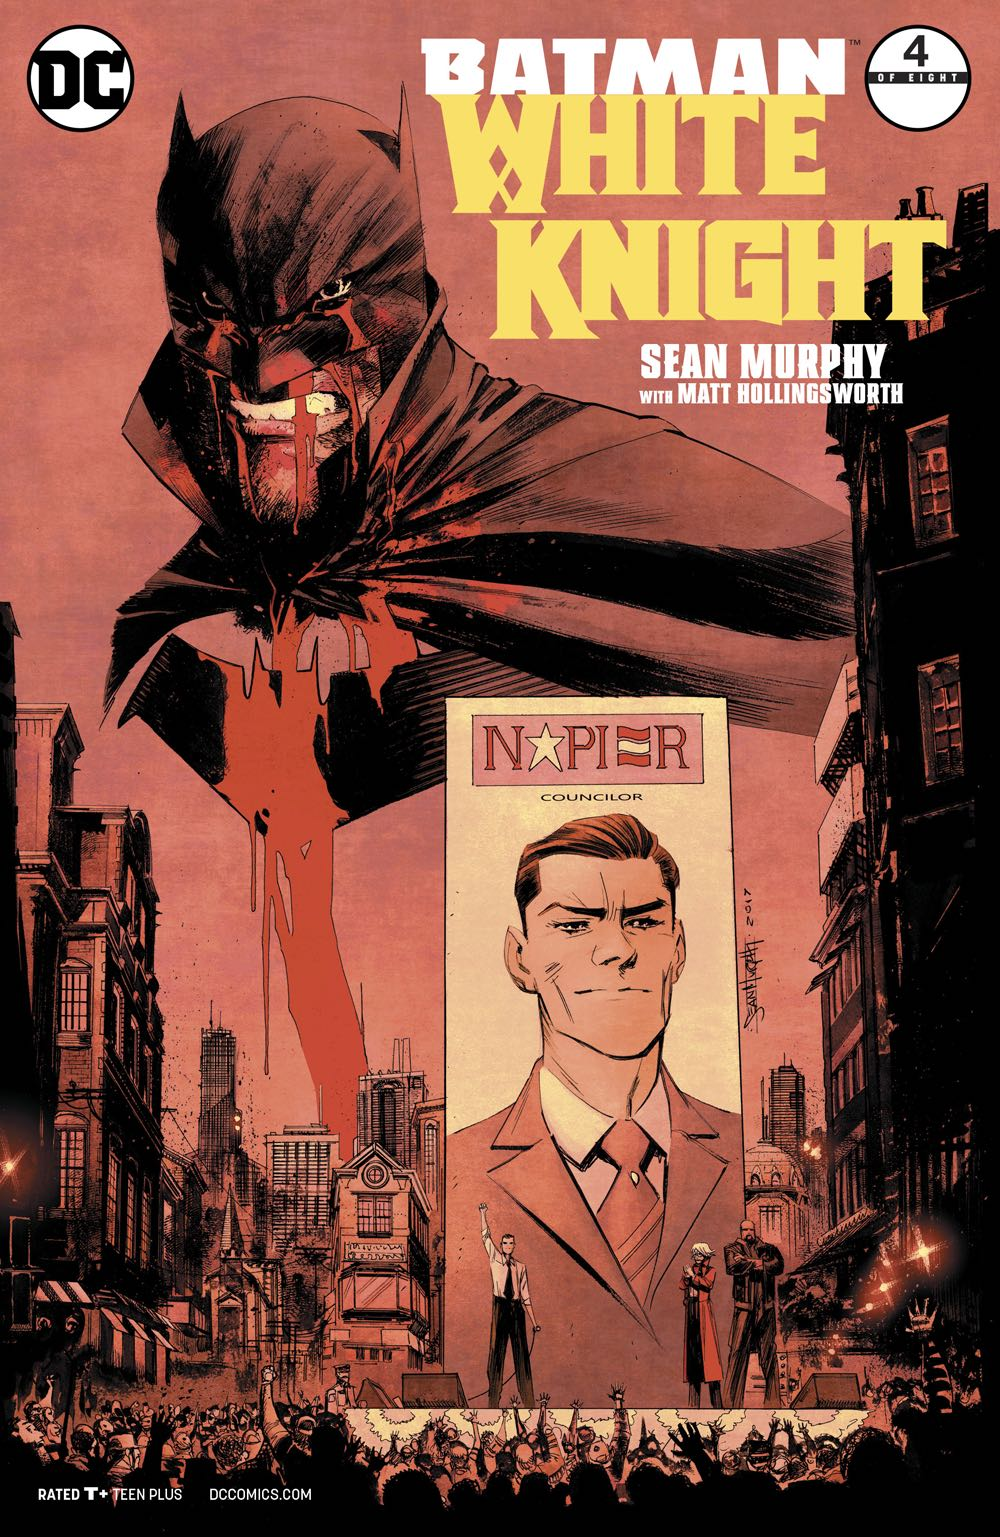 Episode 17 Cover of the Week! - (DC) Batman White Knight #4Cover by Sean MurphyWritten by Sean MurphyIllustrated by Sean MurphyDid the Content Match the Drapes? - YES!